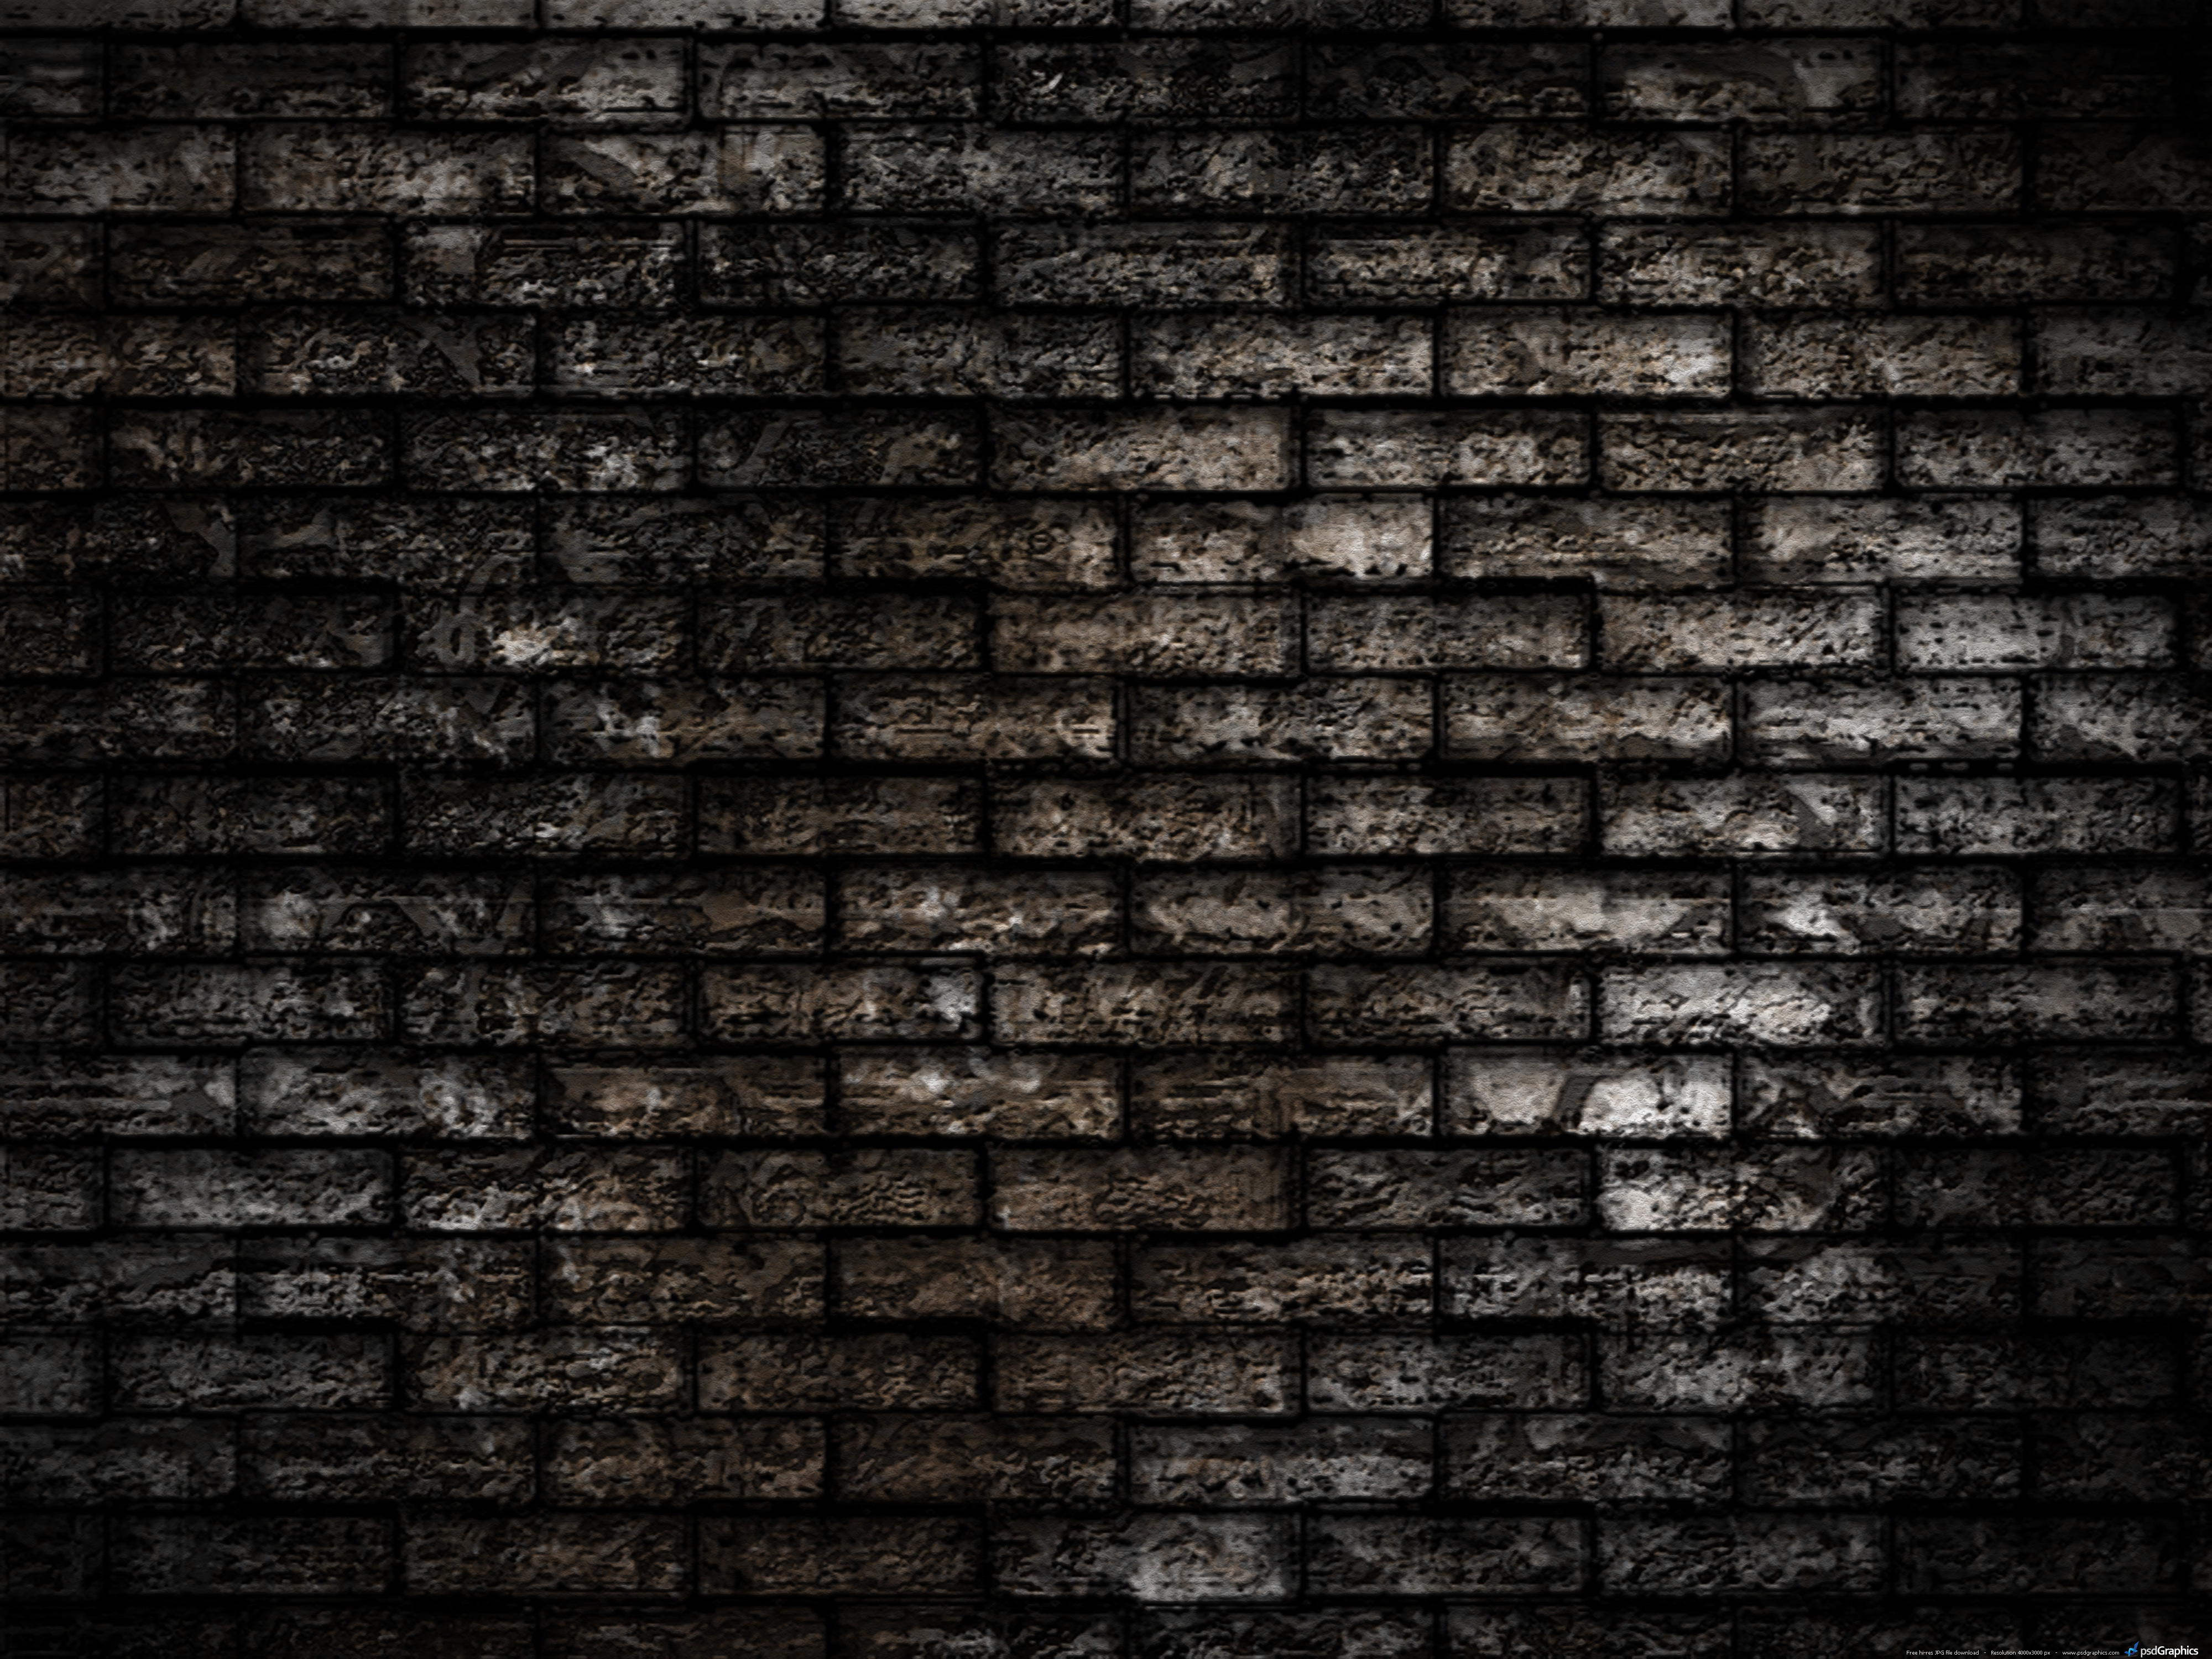 20 Grunge Brick Walls Design Images